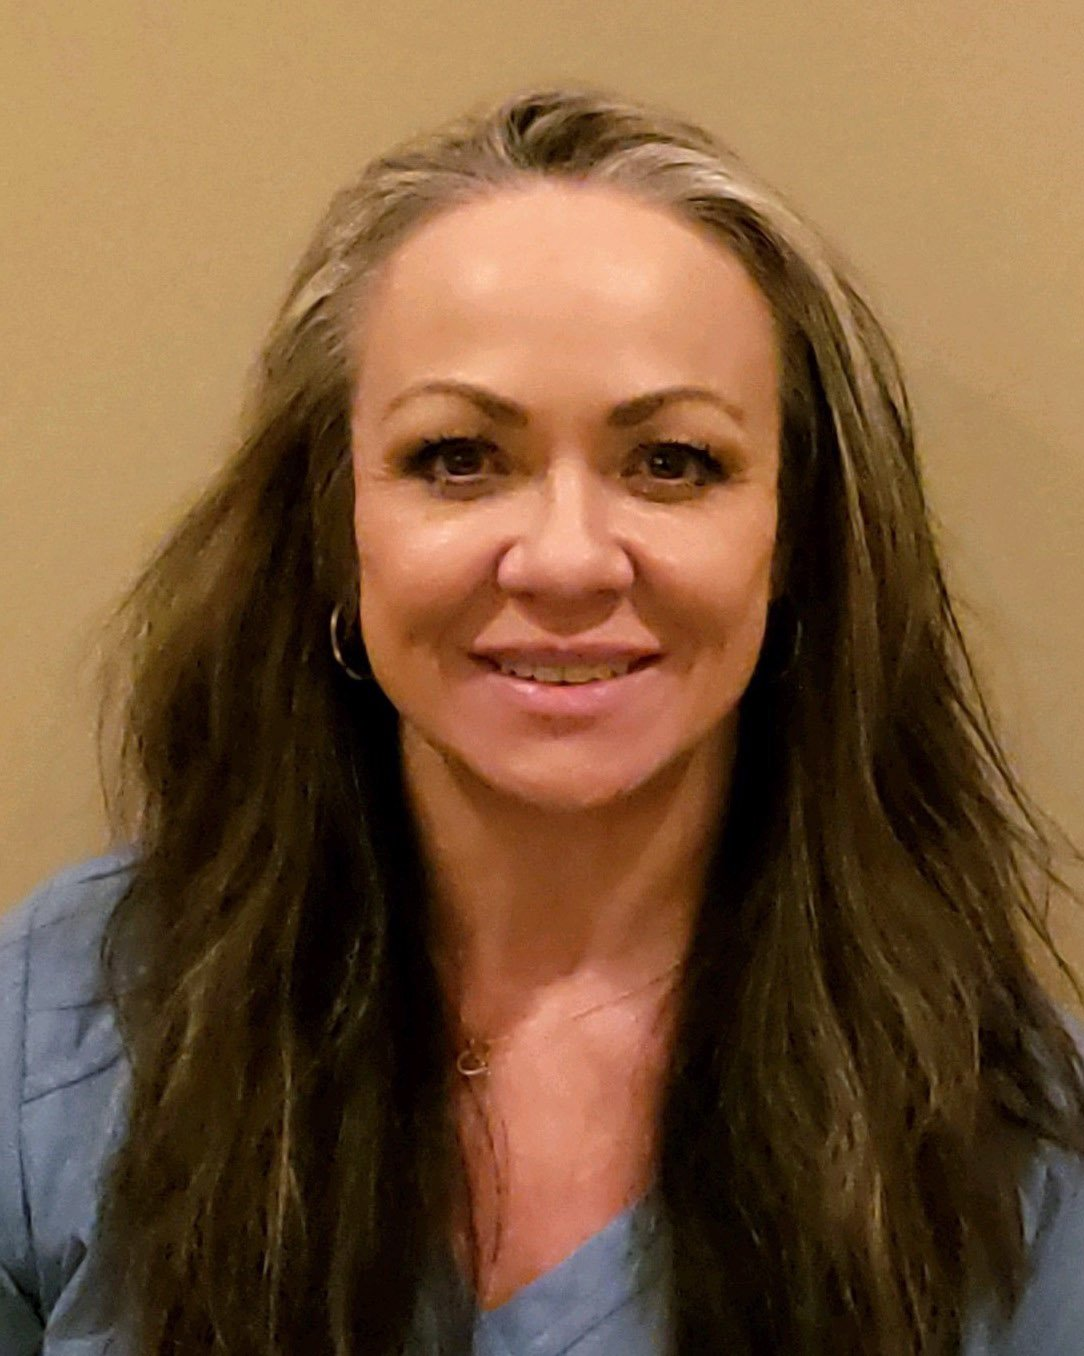 Marci Thames, Massage Therapist at HealthQuest Fitness & Wellness Center.